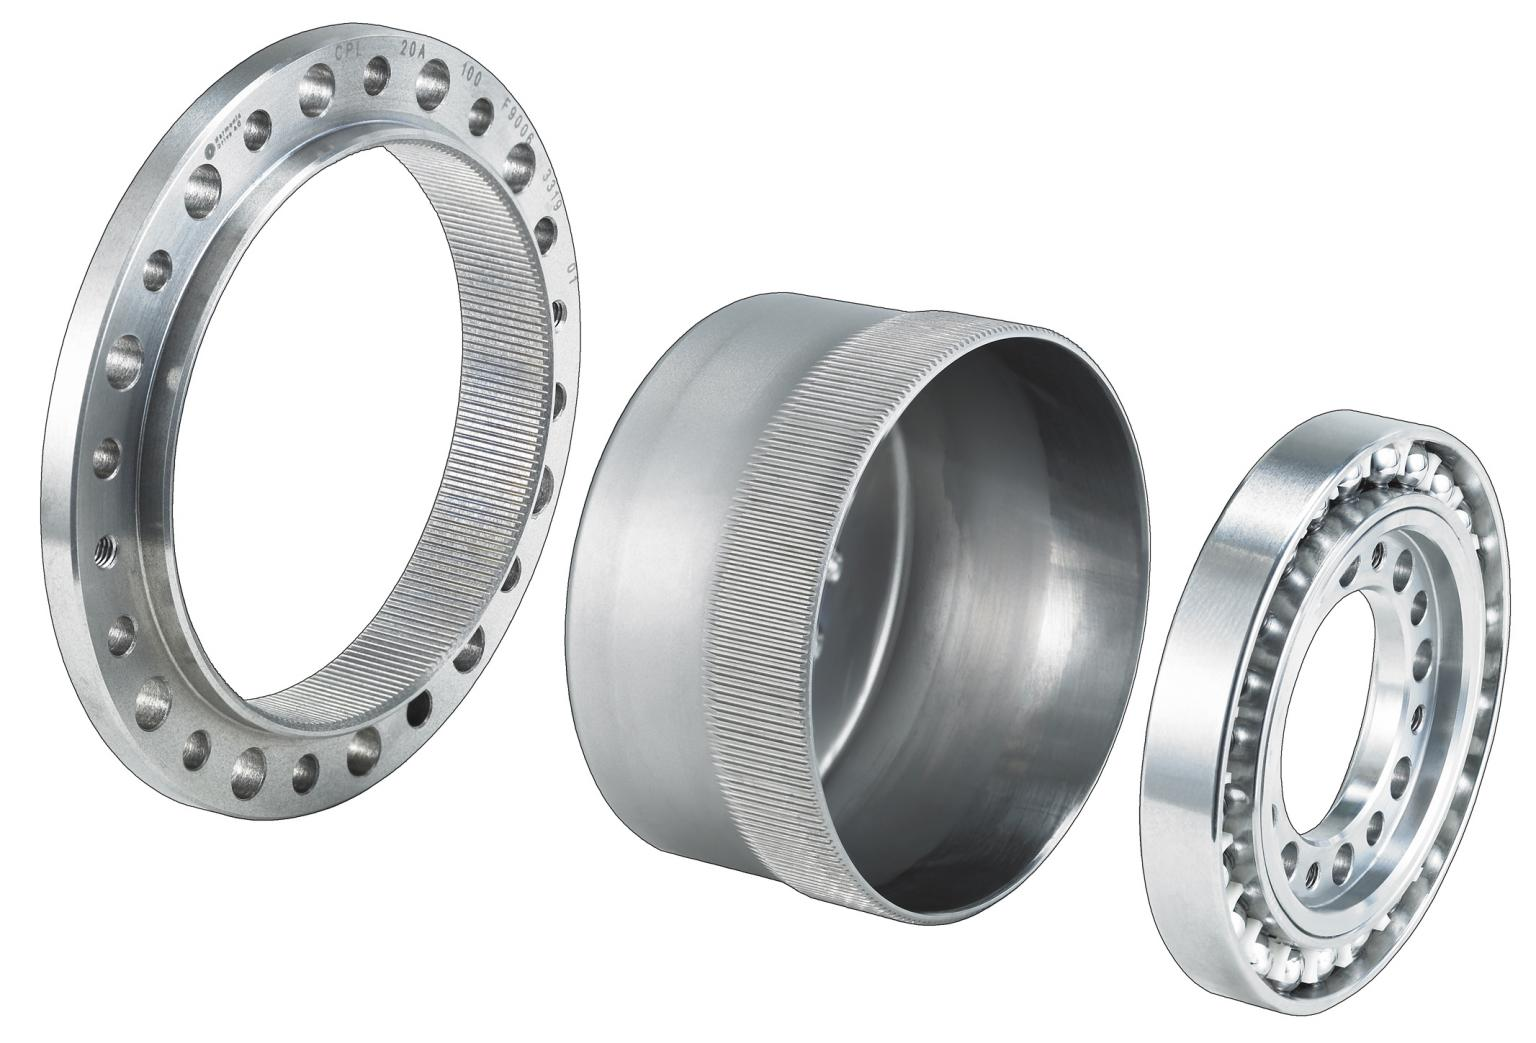 Harmonic Drives offers a wide range of gear products, suitable for the most demanding tasks